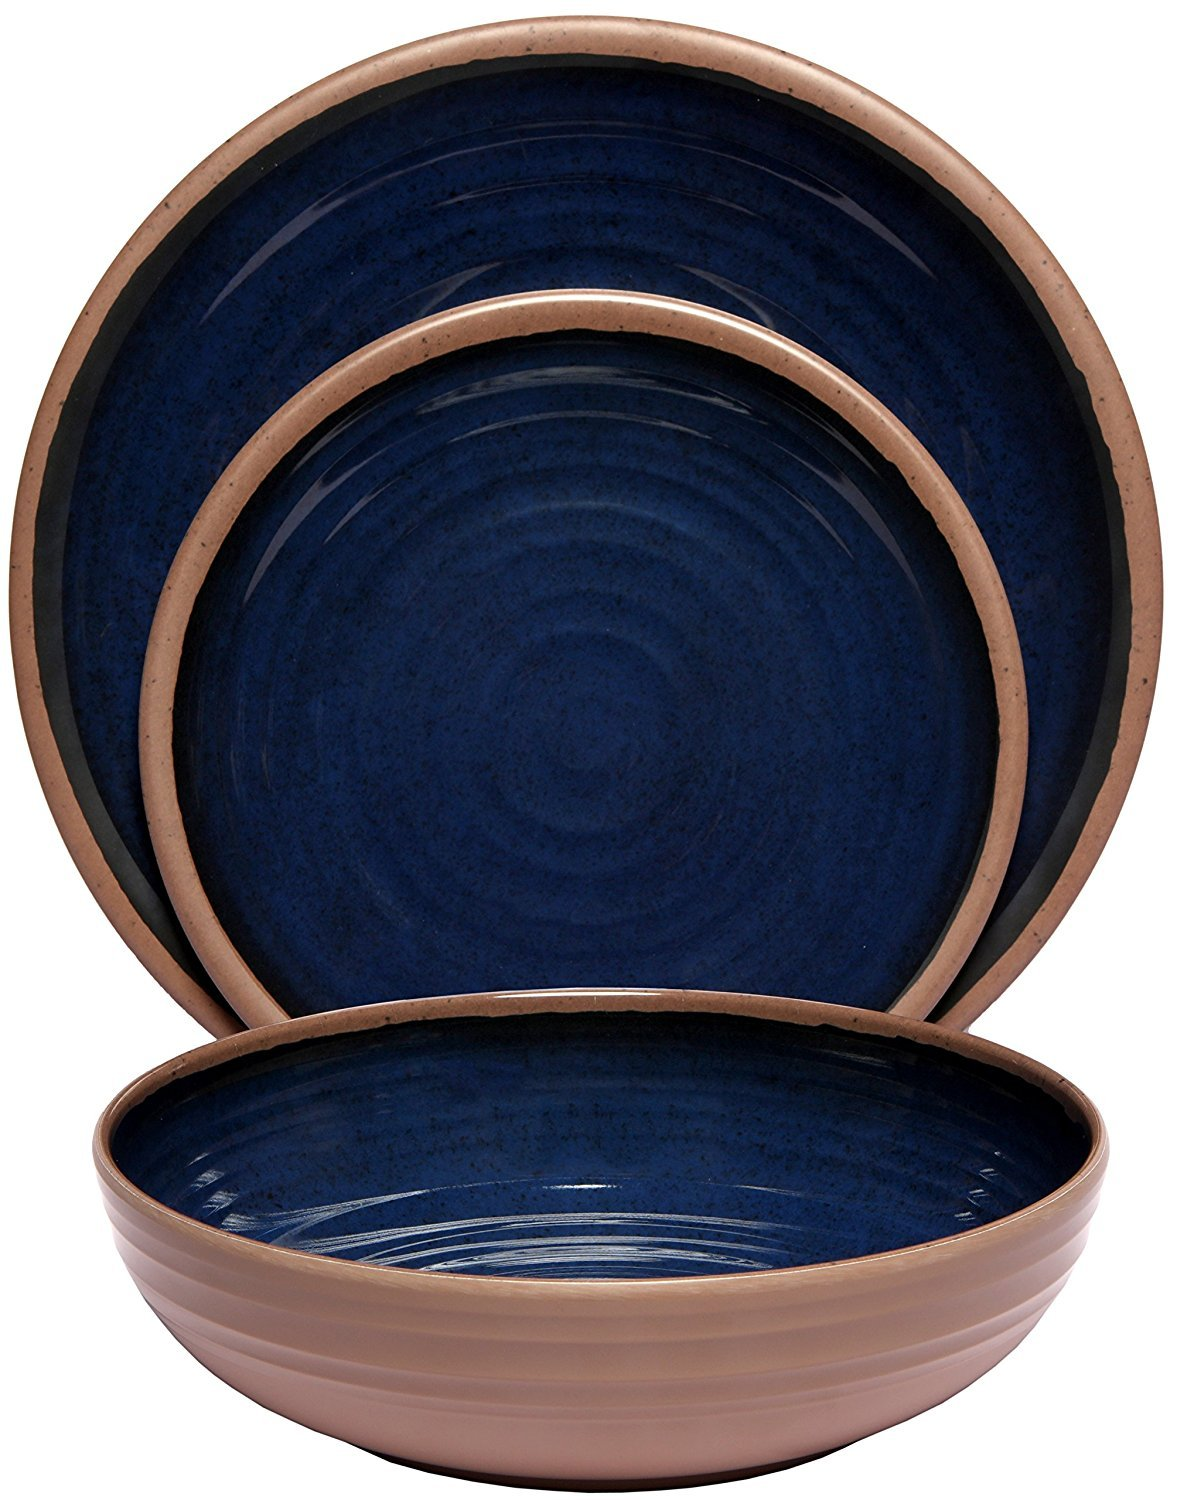 Melange 612409791269 12-Piece 100% Melamine Dinnerware Set (Clay Collection ) | Shatter-Proof and Chip-Resistant Melamine Plates and Bowls | Color: Navy | Dinner Plate, Salad Plate & Soup Bowl (4 Each),Navy by Melange